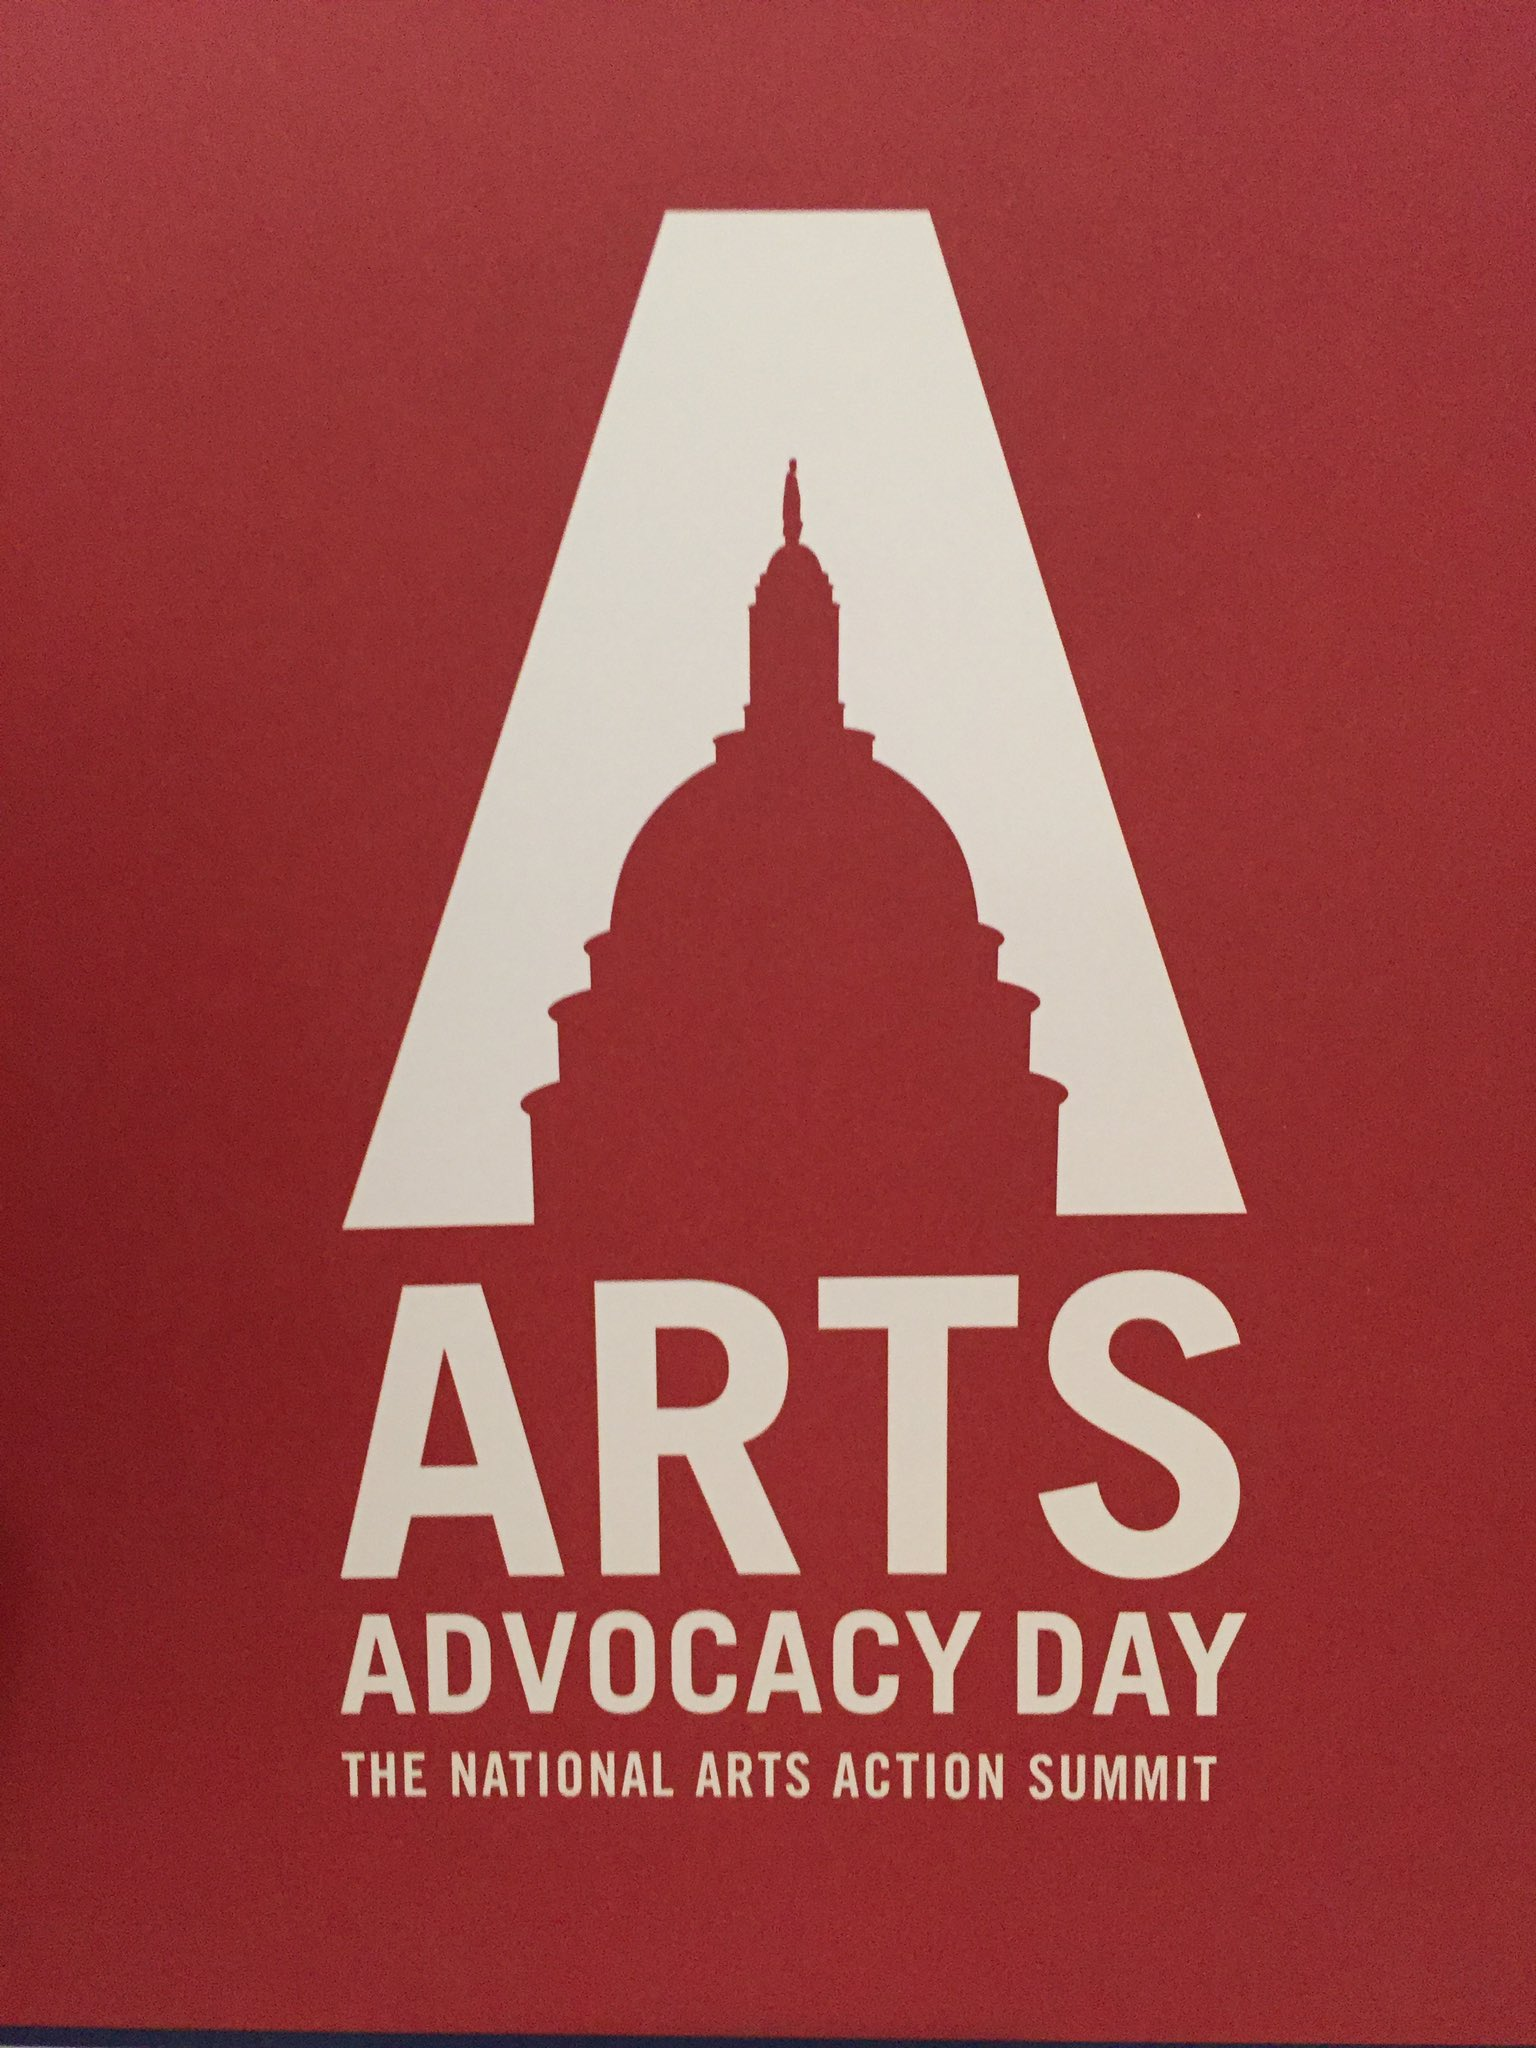 Largest ever gathering at @Americans4Arts #SavetheNEA #artsadvocacy day 2017. #Maryland has one of the largest contingents. Yay! https://t.co/sonCe11KPp